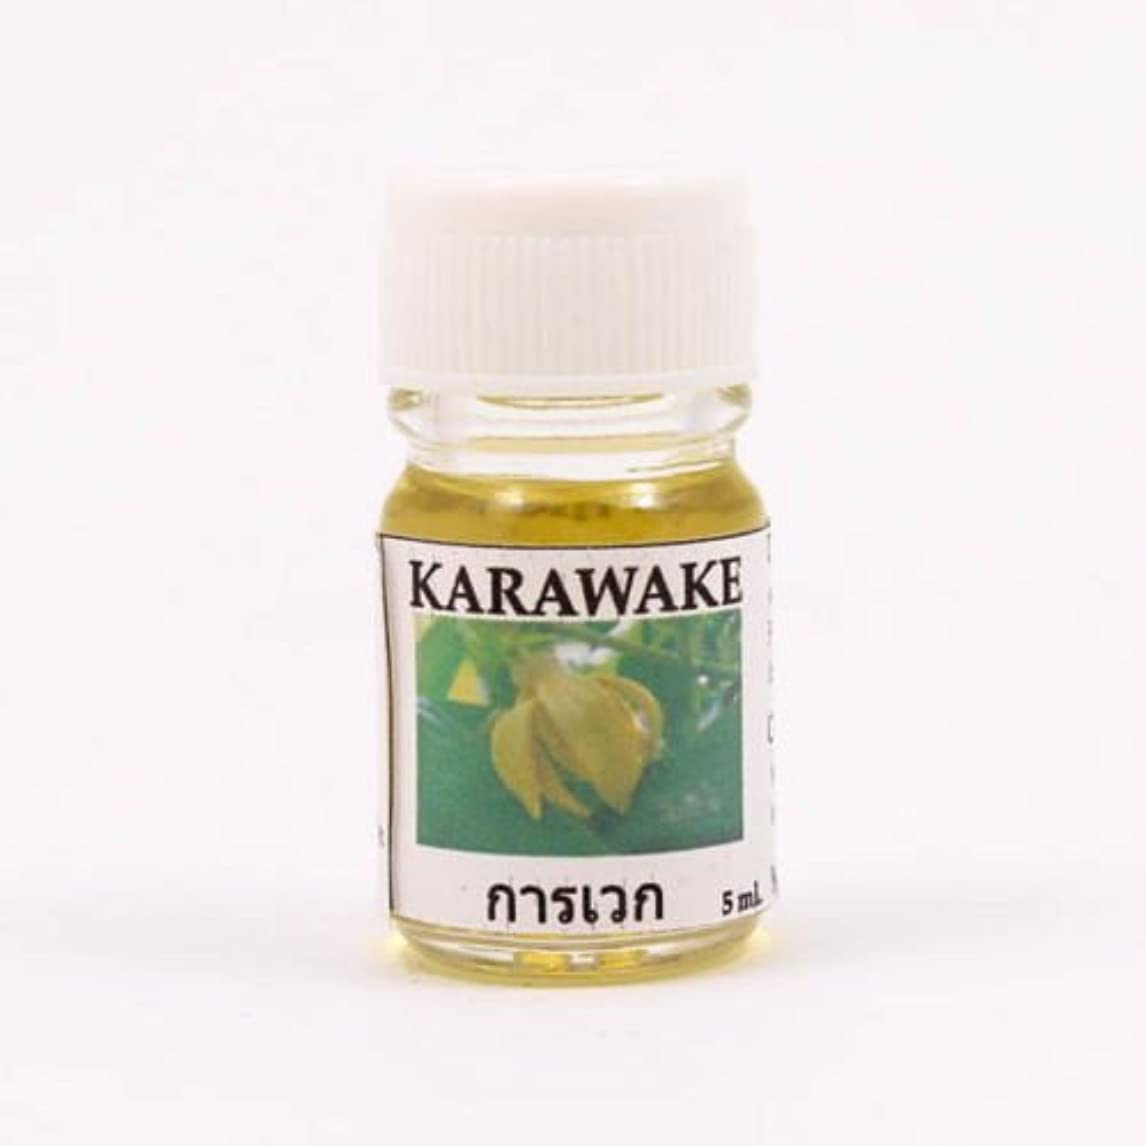 水曜日火曜日レース6X Karawake Aroma Fragrance Essential Oil 5ML. cc Diffuser Burner Therapy